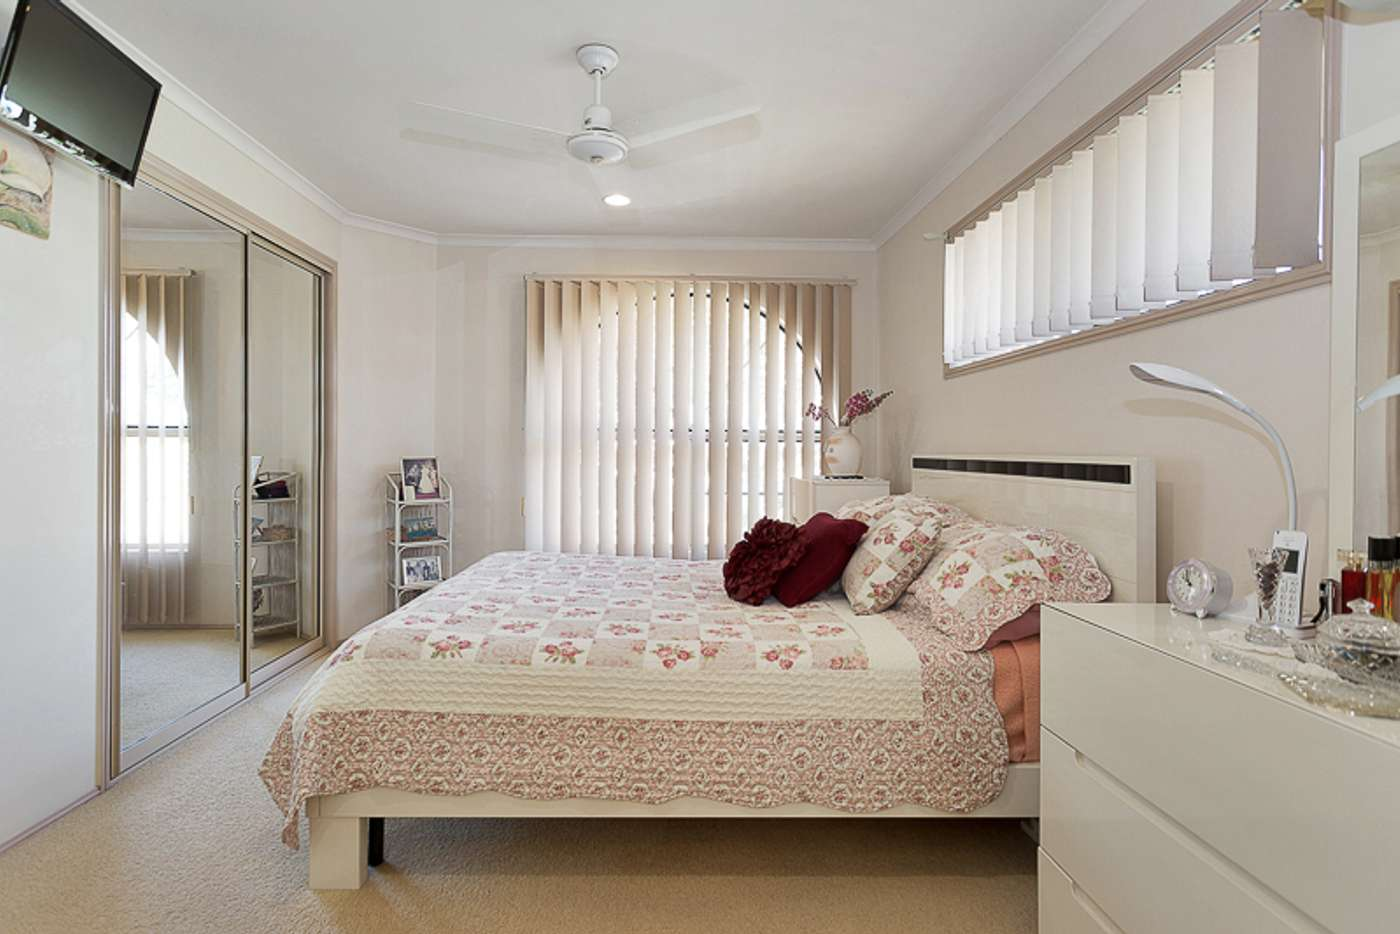 Sixth view of Homely house listing, 100 Eaglemount Road, Beaconsfield QLD 4740